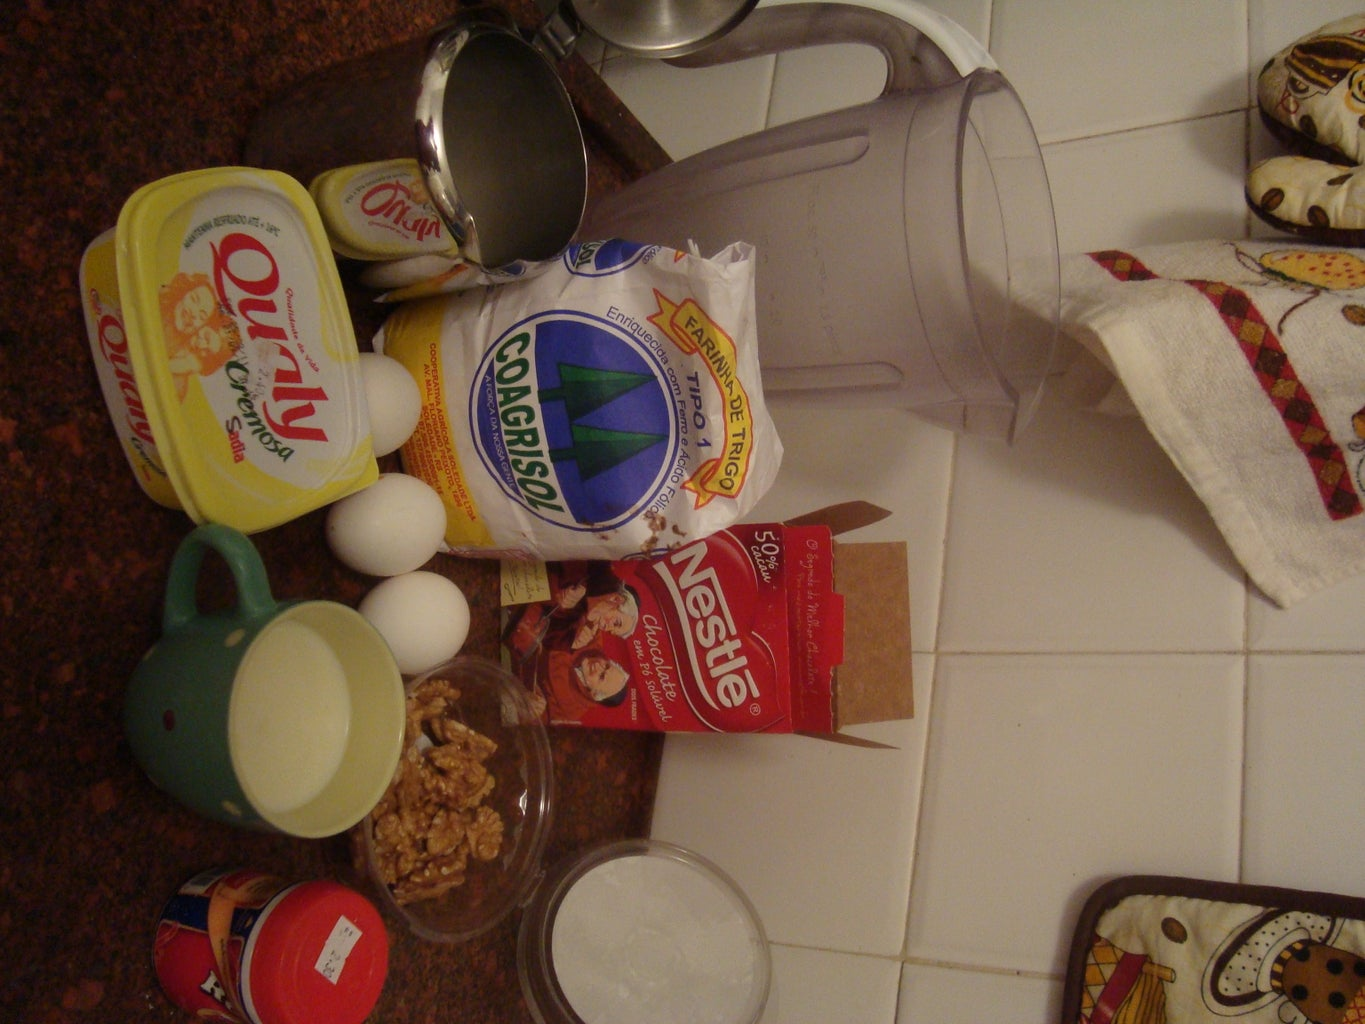 The Muffin Ingredients: